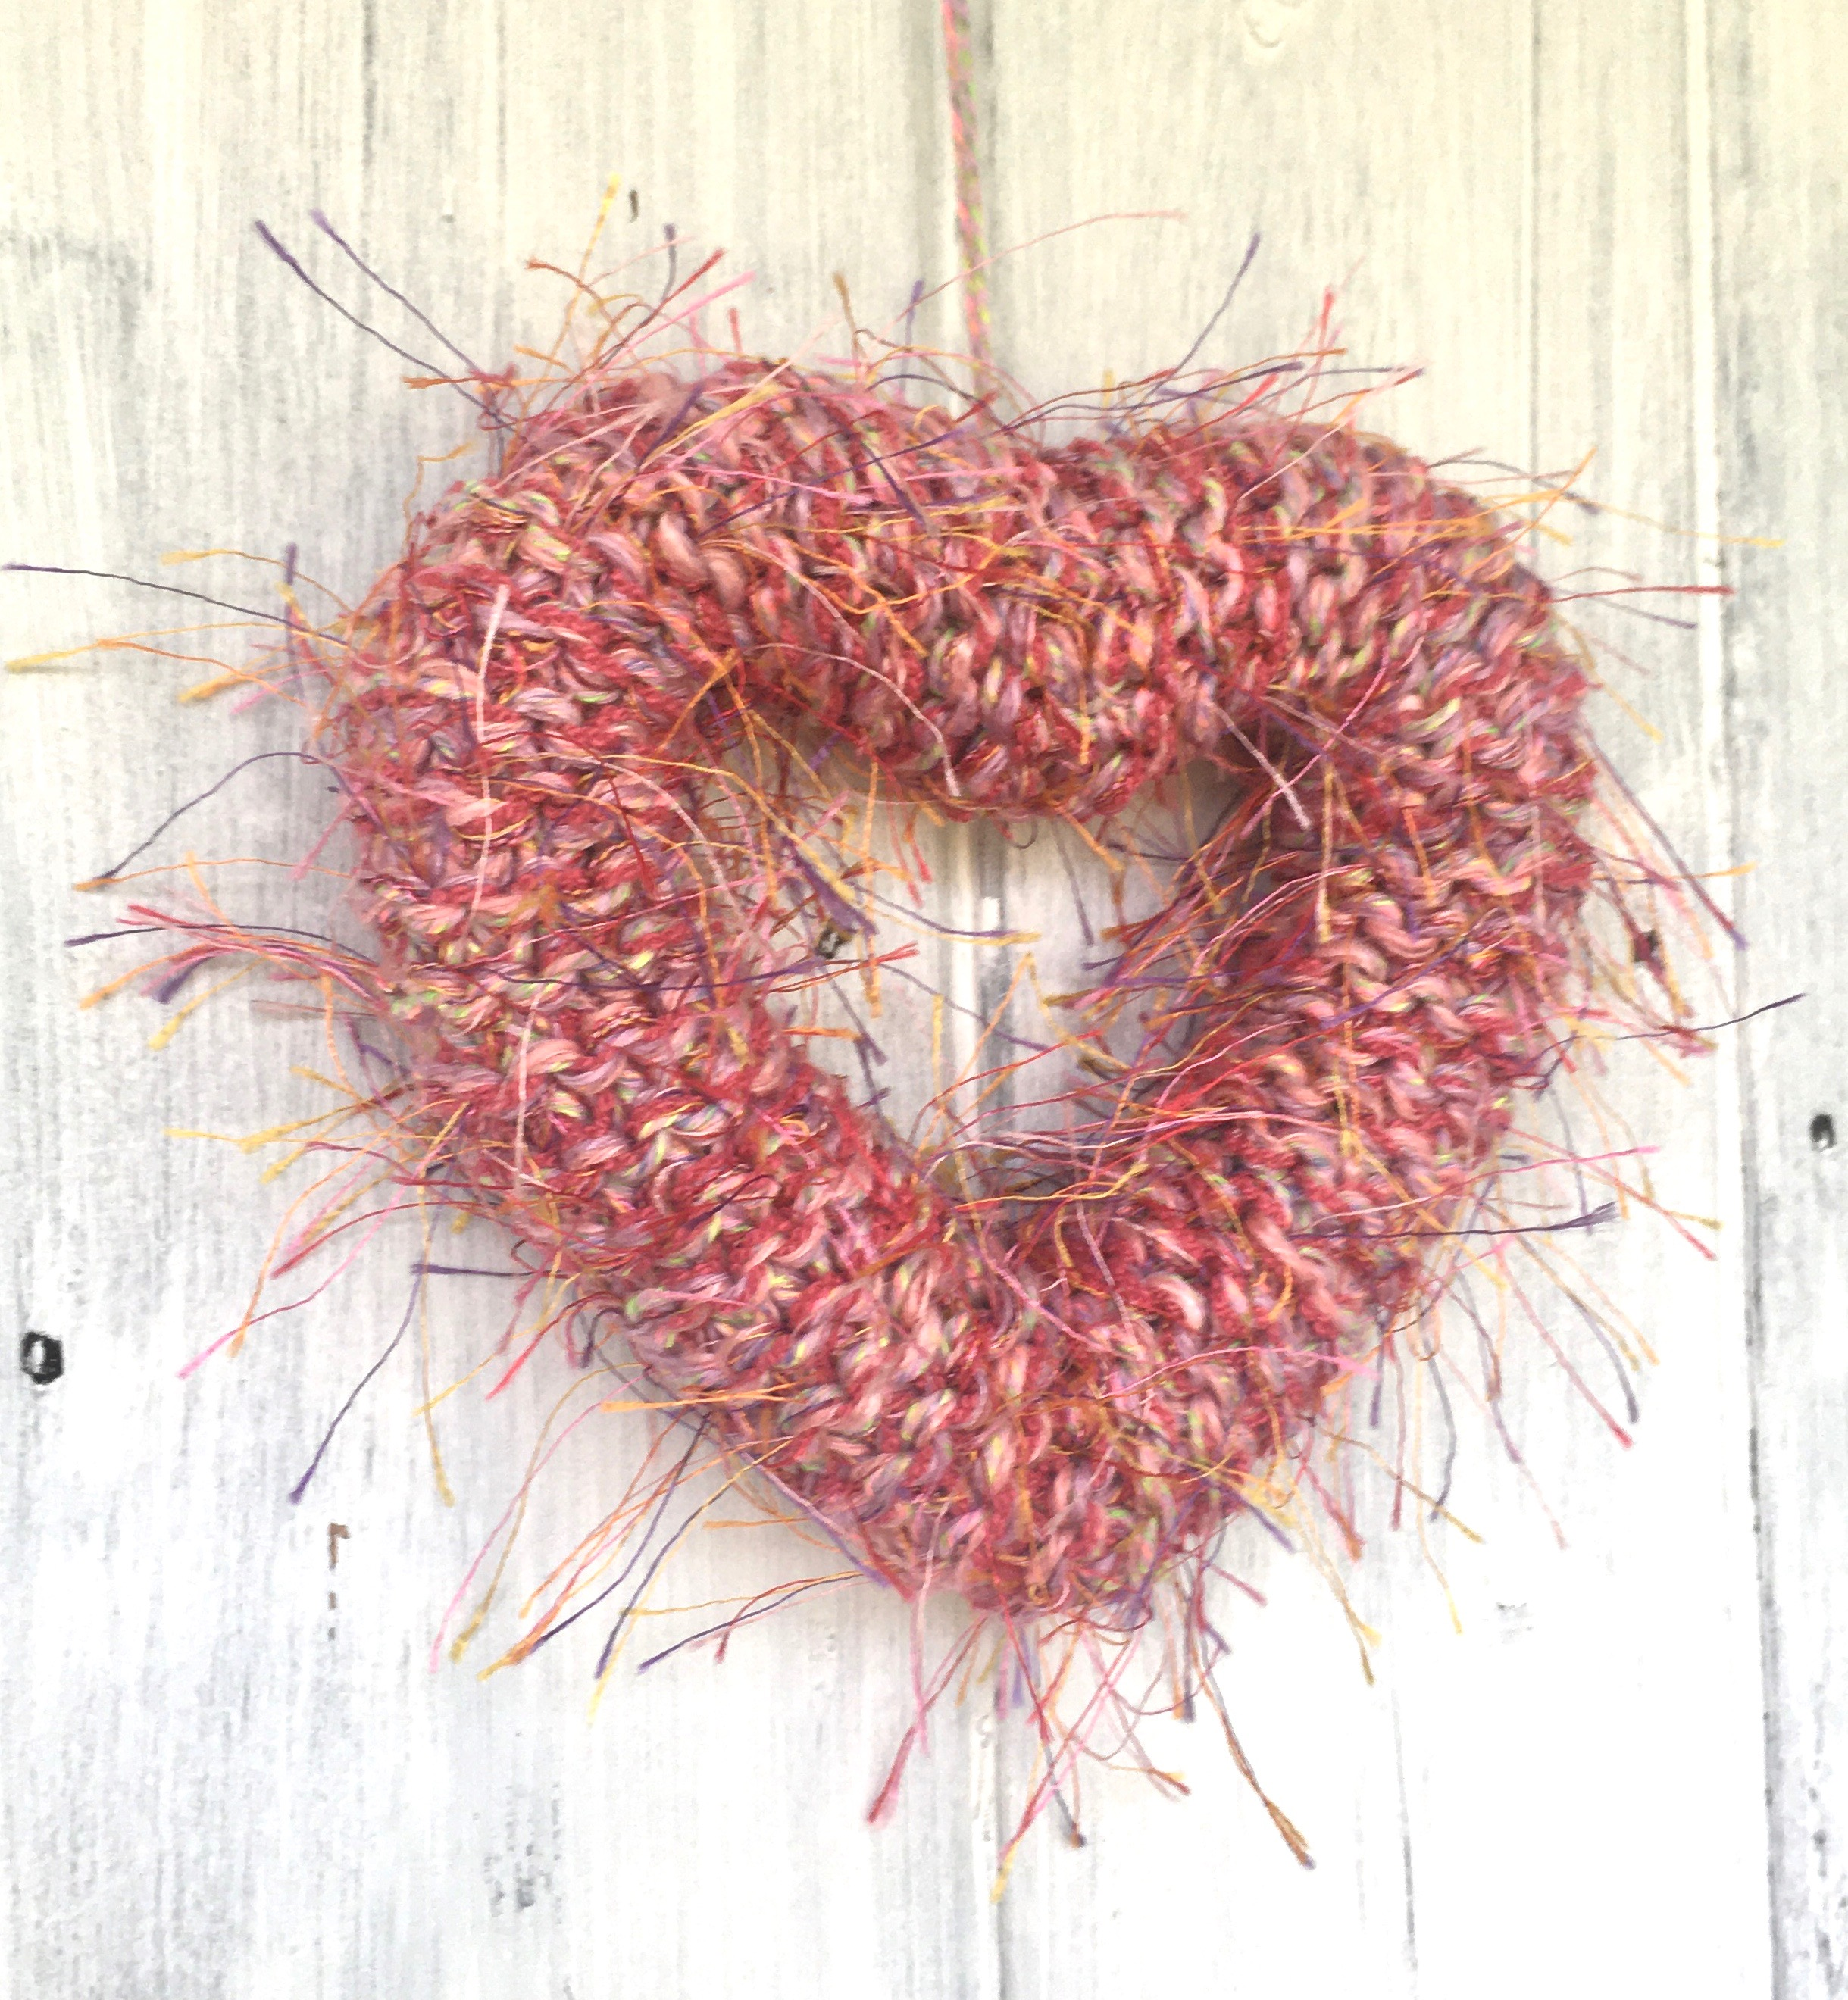 Pink Fluffy Knitted Heart